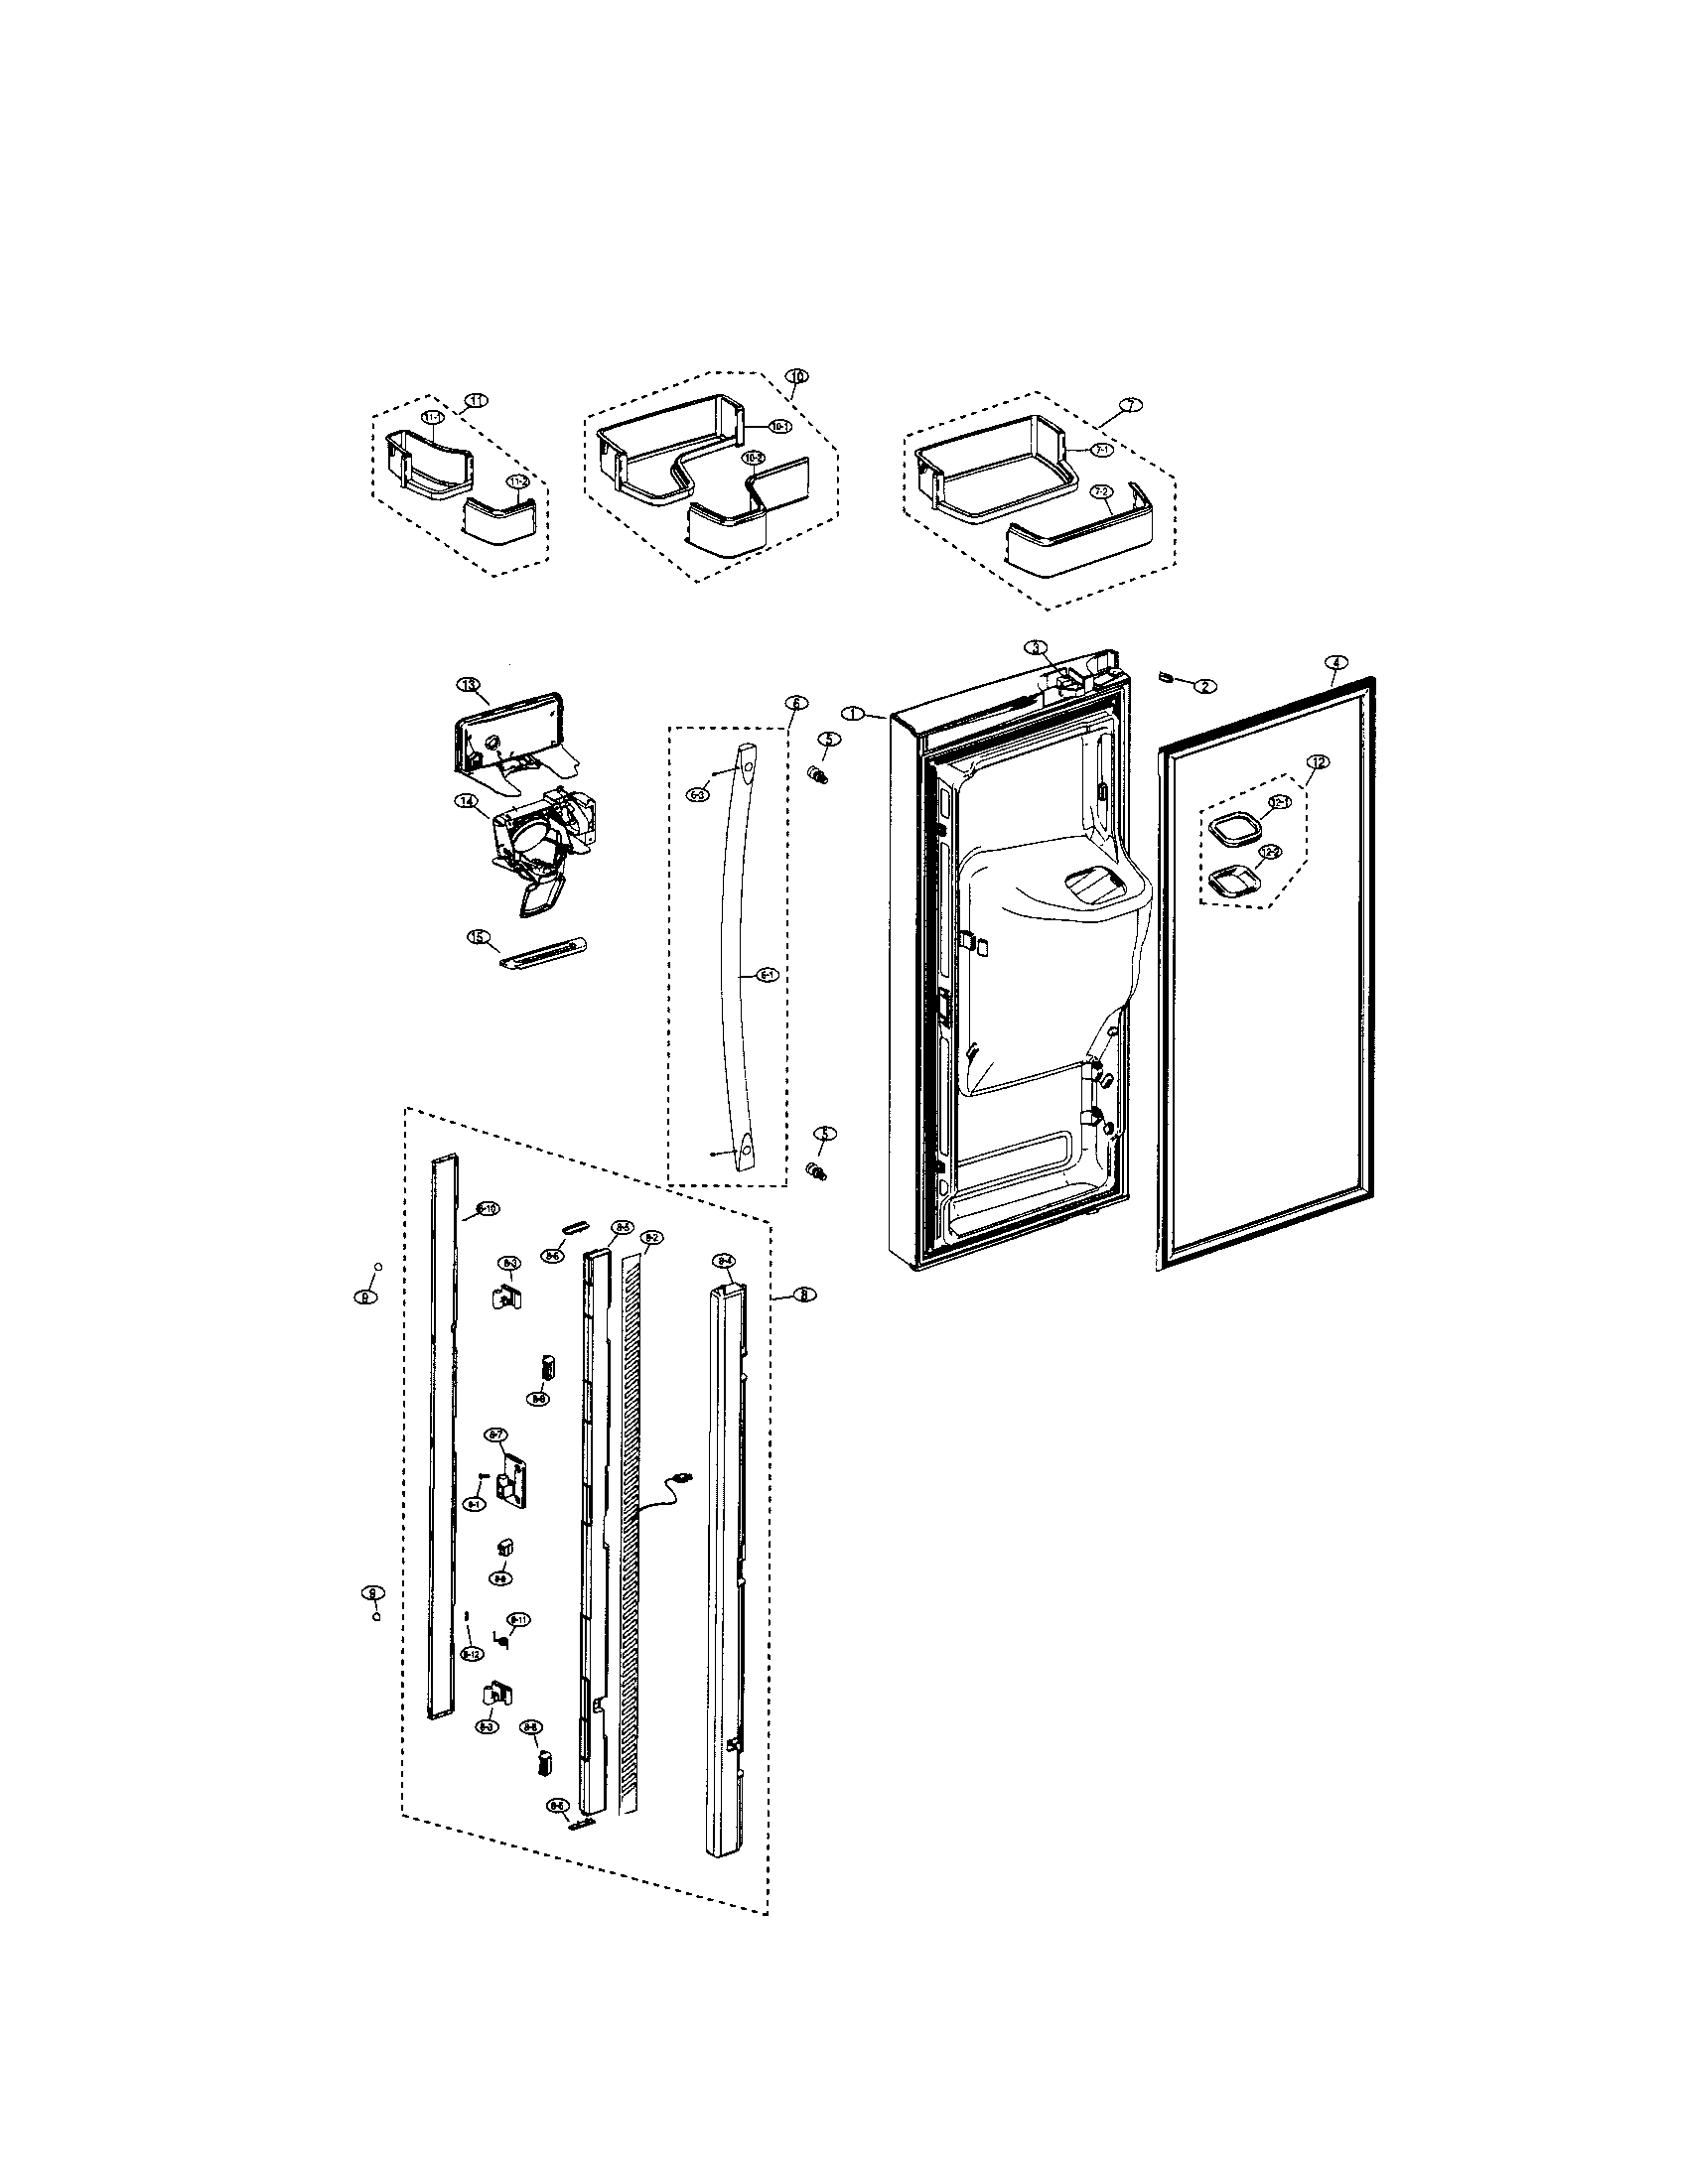 REFRIGERATOR LEFT DOOR Diagram & Parts List for Model